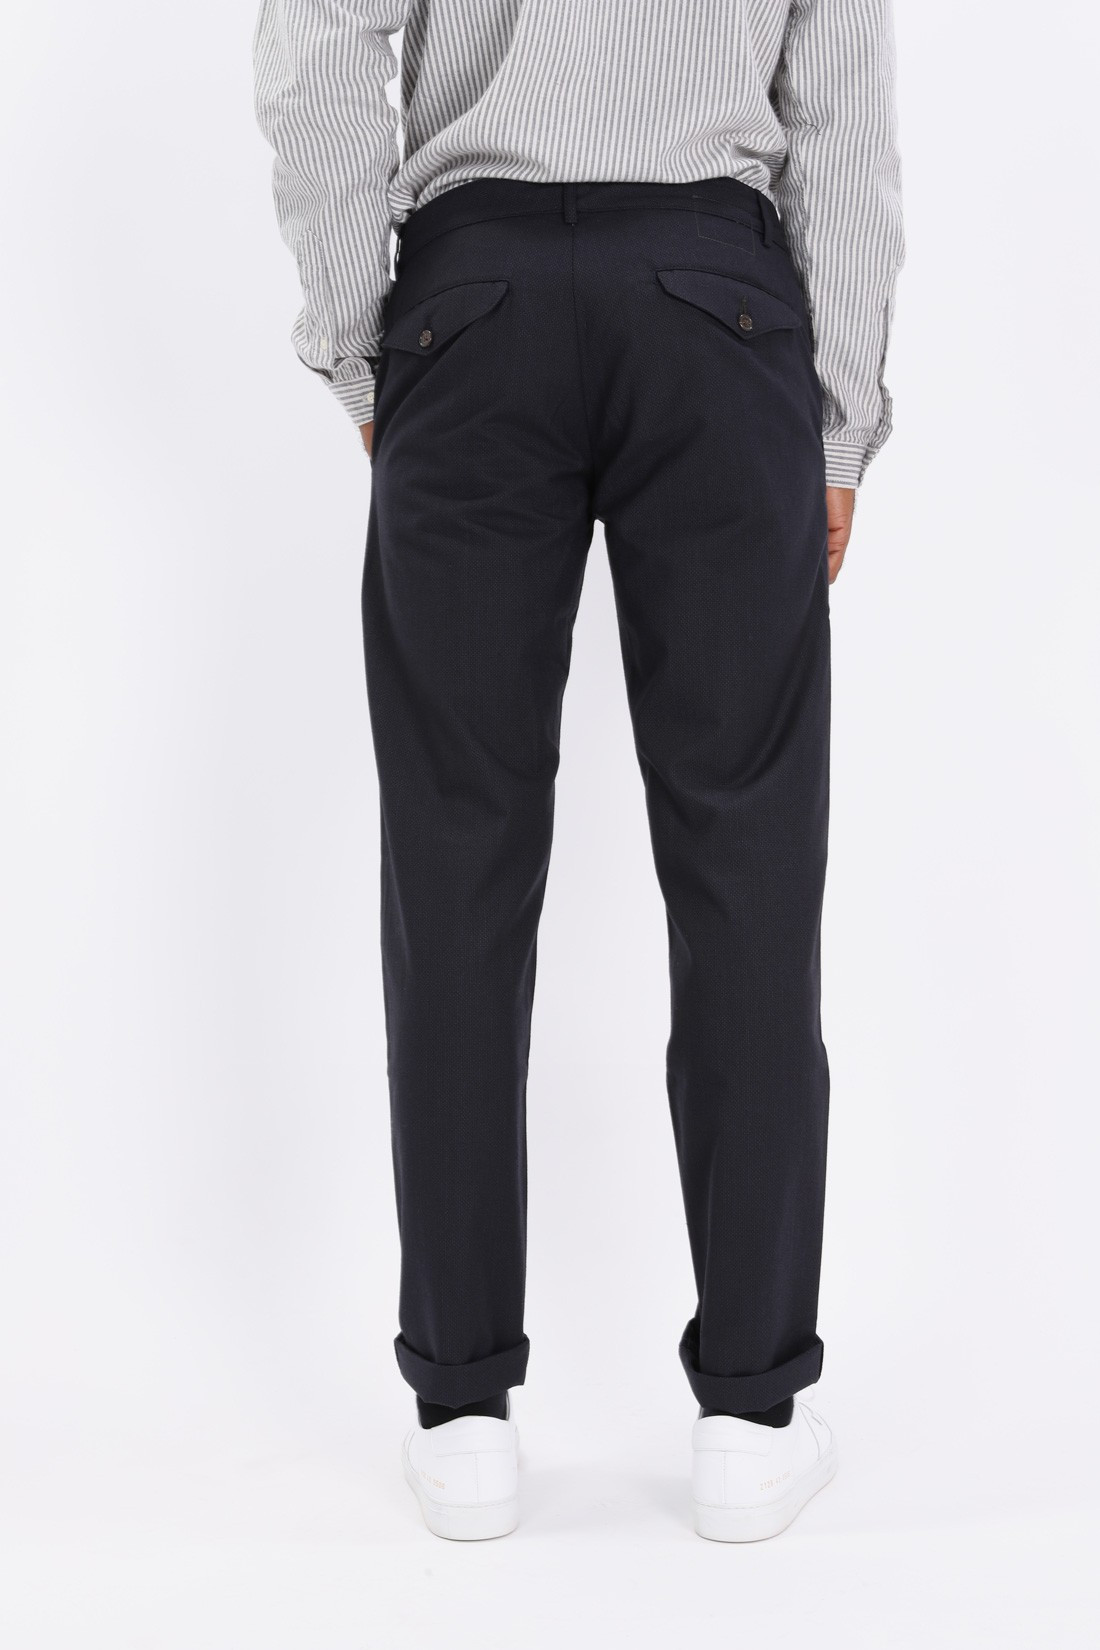 UNIVERSAL WORKS / Aston pant cotton wool mix Charcoal